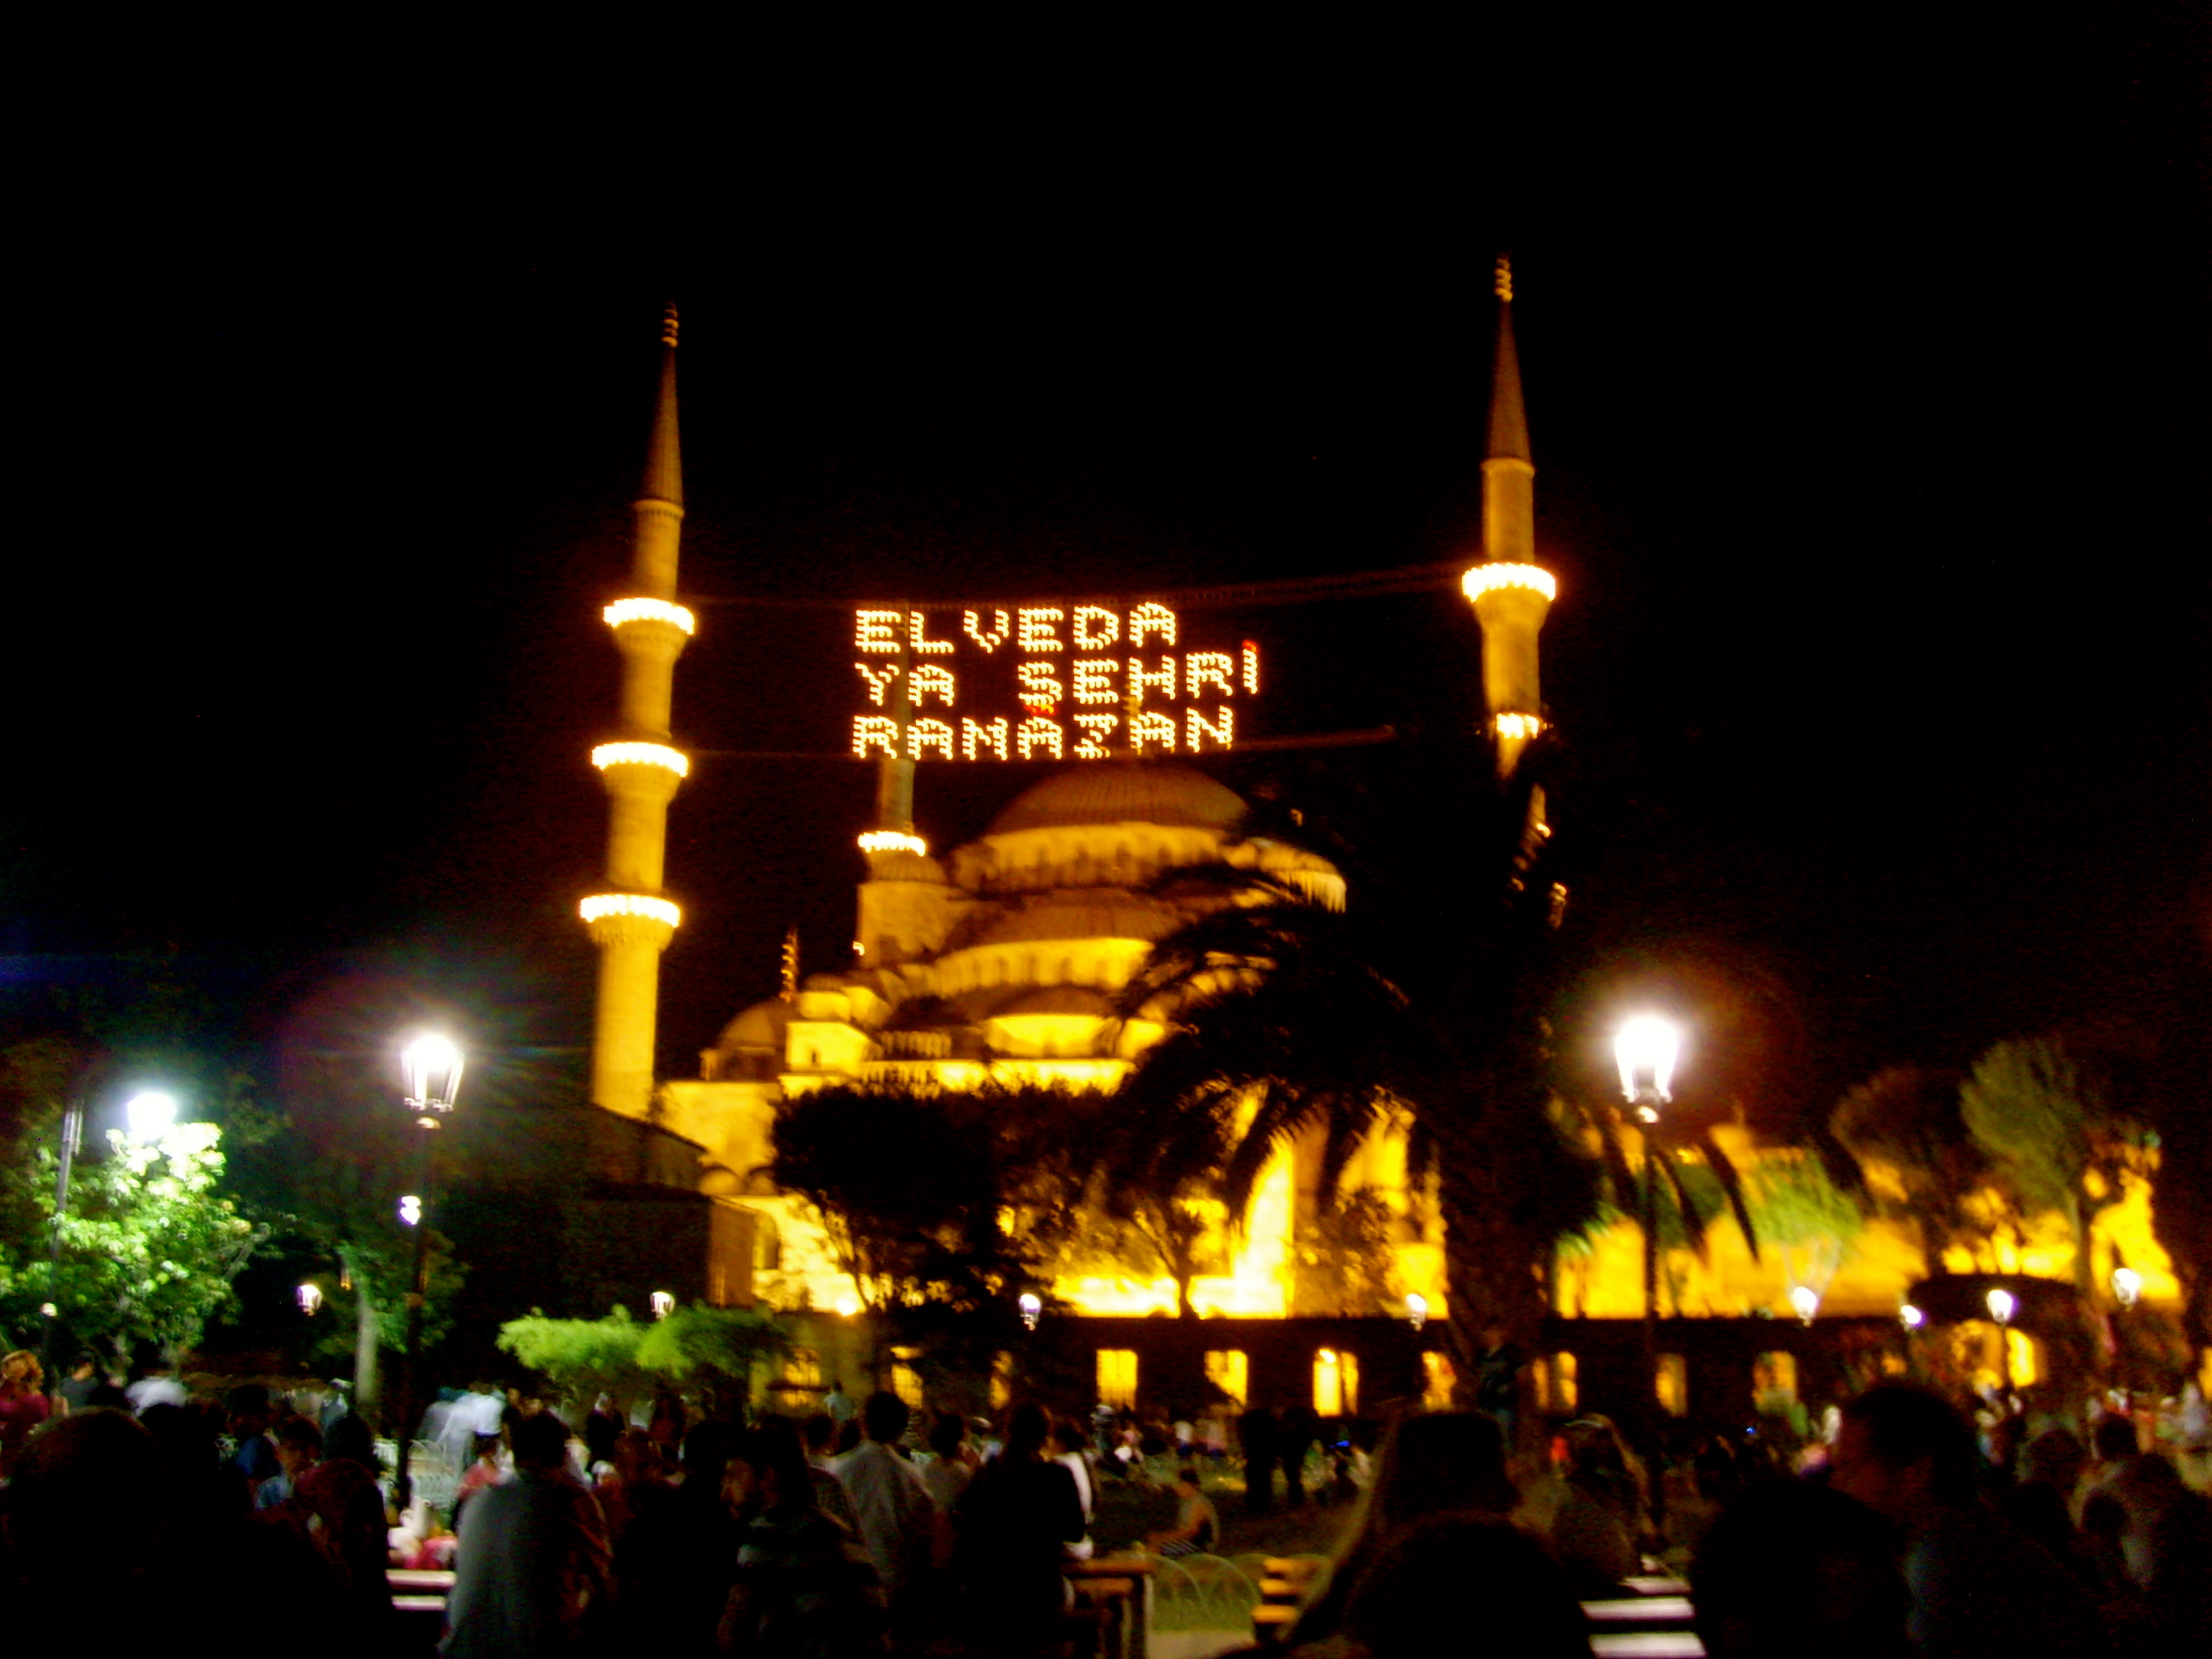 Ramadan celebrations at the Blue Mosque, Istanbul